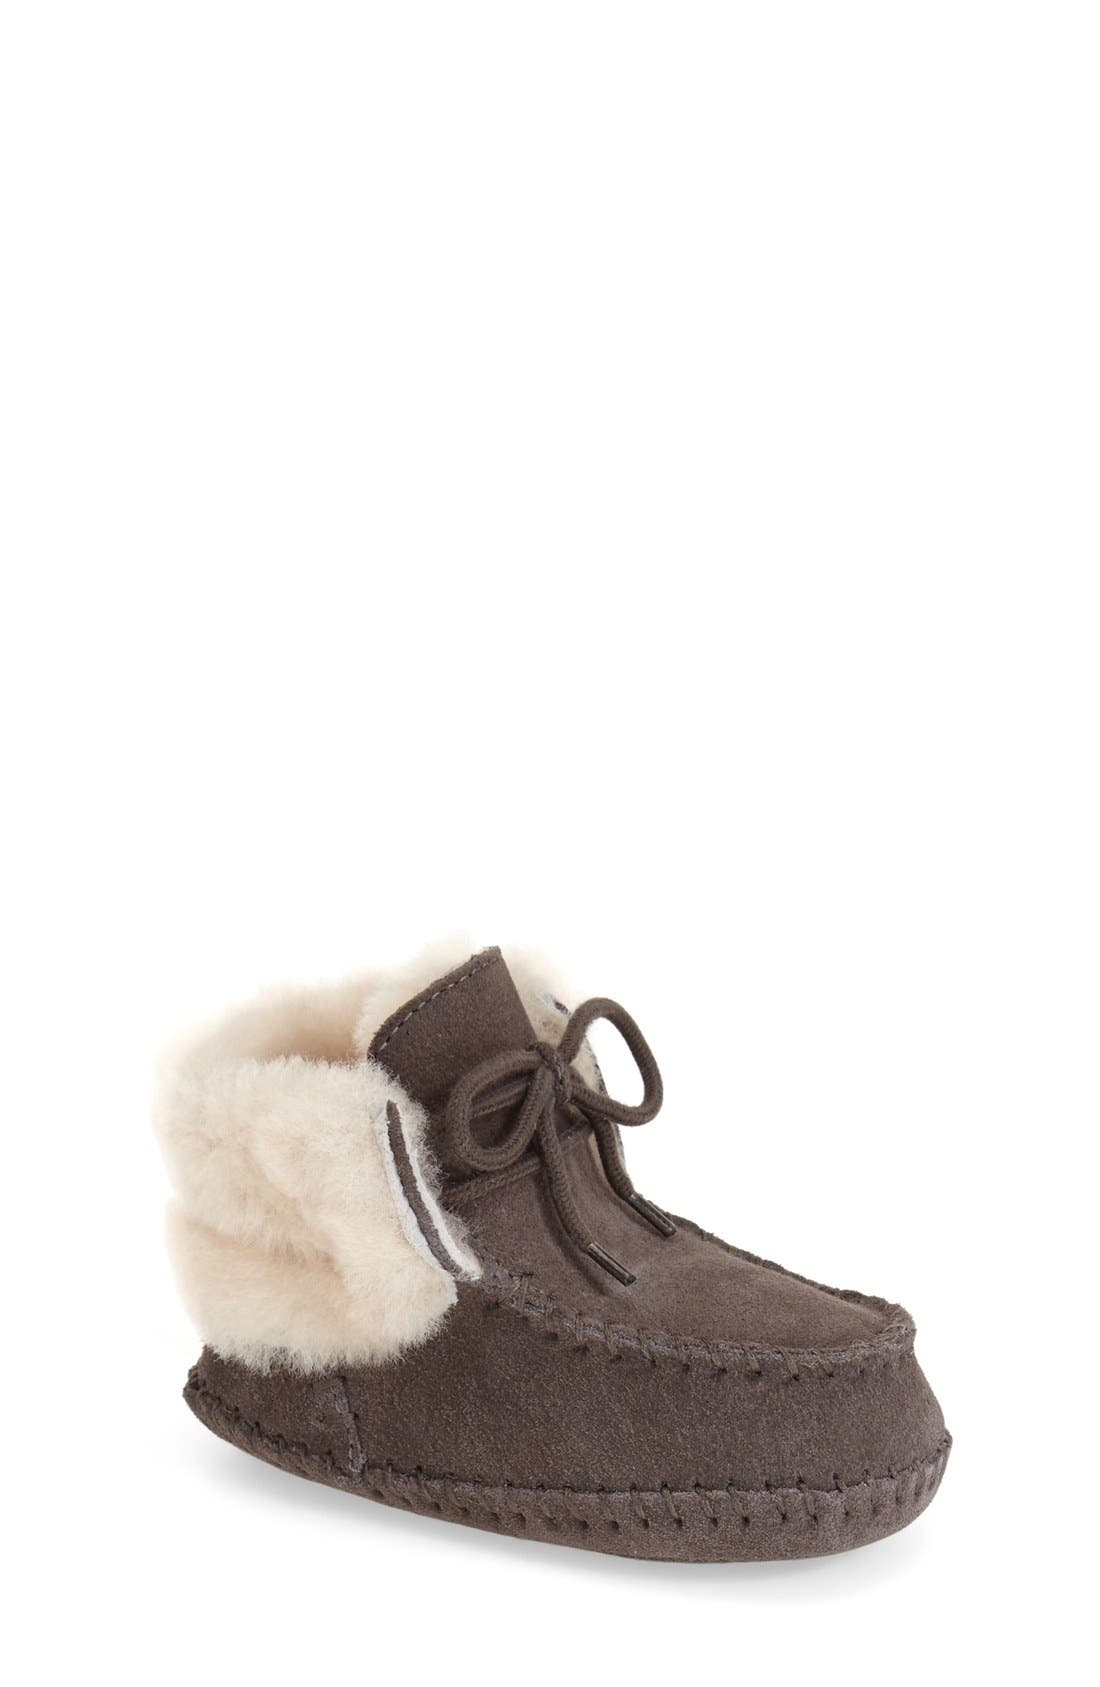 Alternate Image 1 Selected - UGG® 'Sparrow' Boot (Baby & Walker)